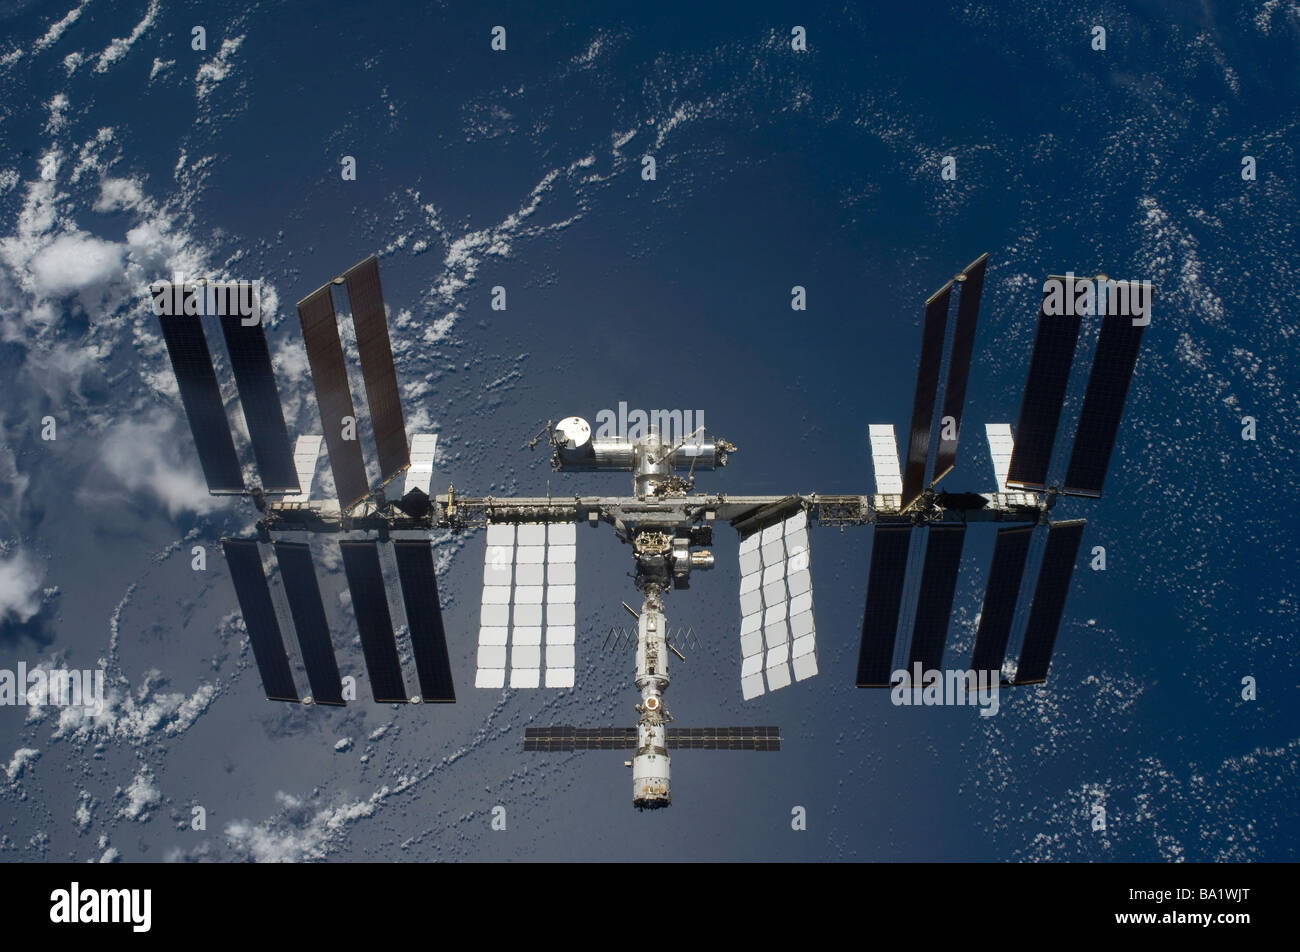 March 25, 2009 - The International Space Station, backdropped by a blue and white Earth. - Stock Image